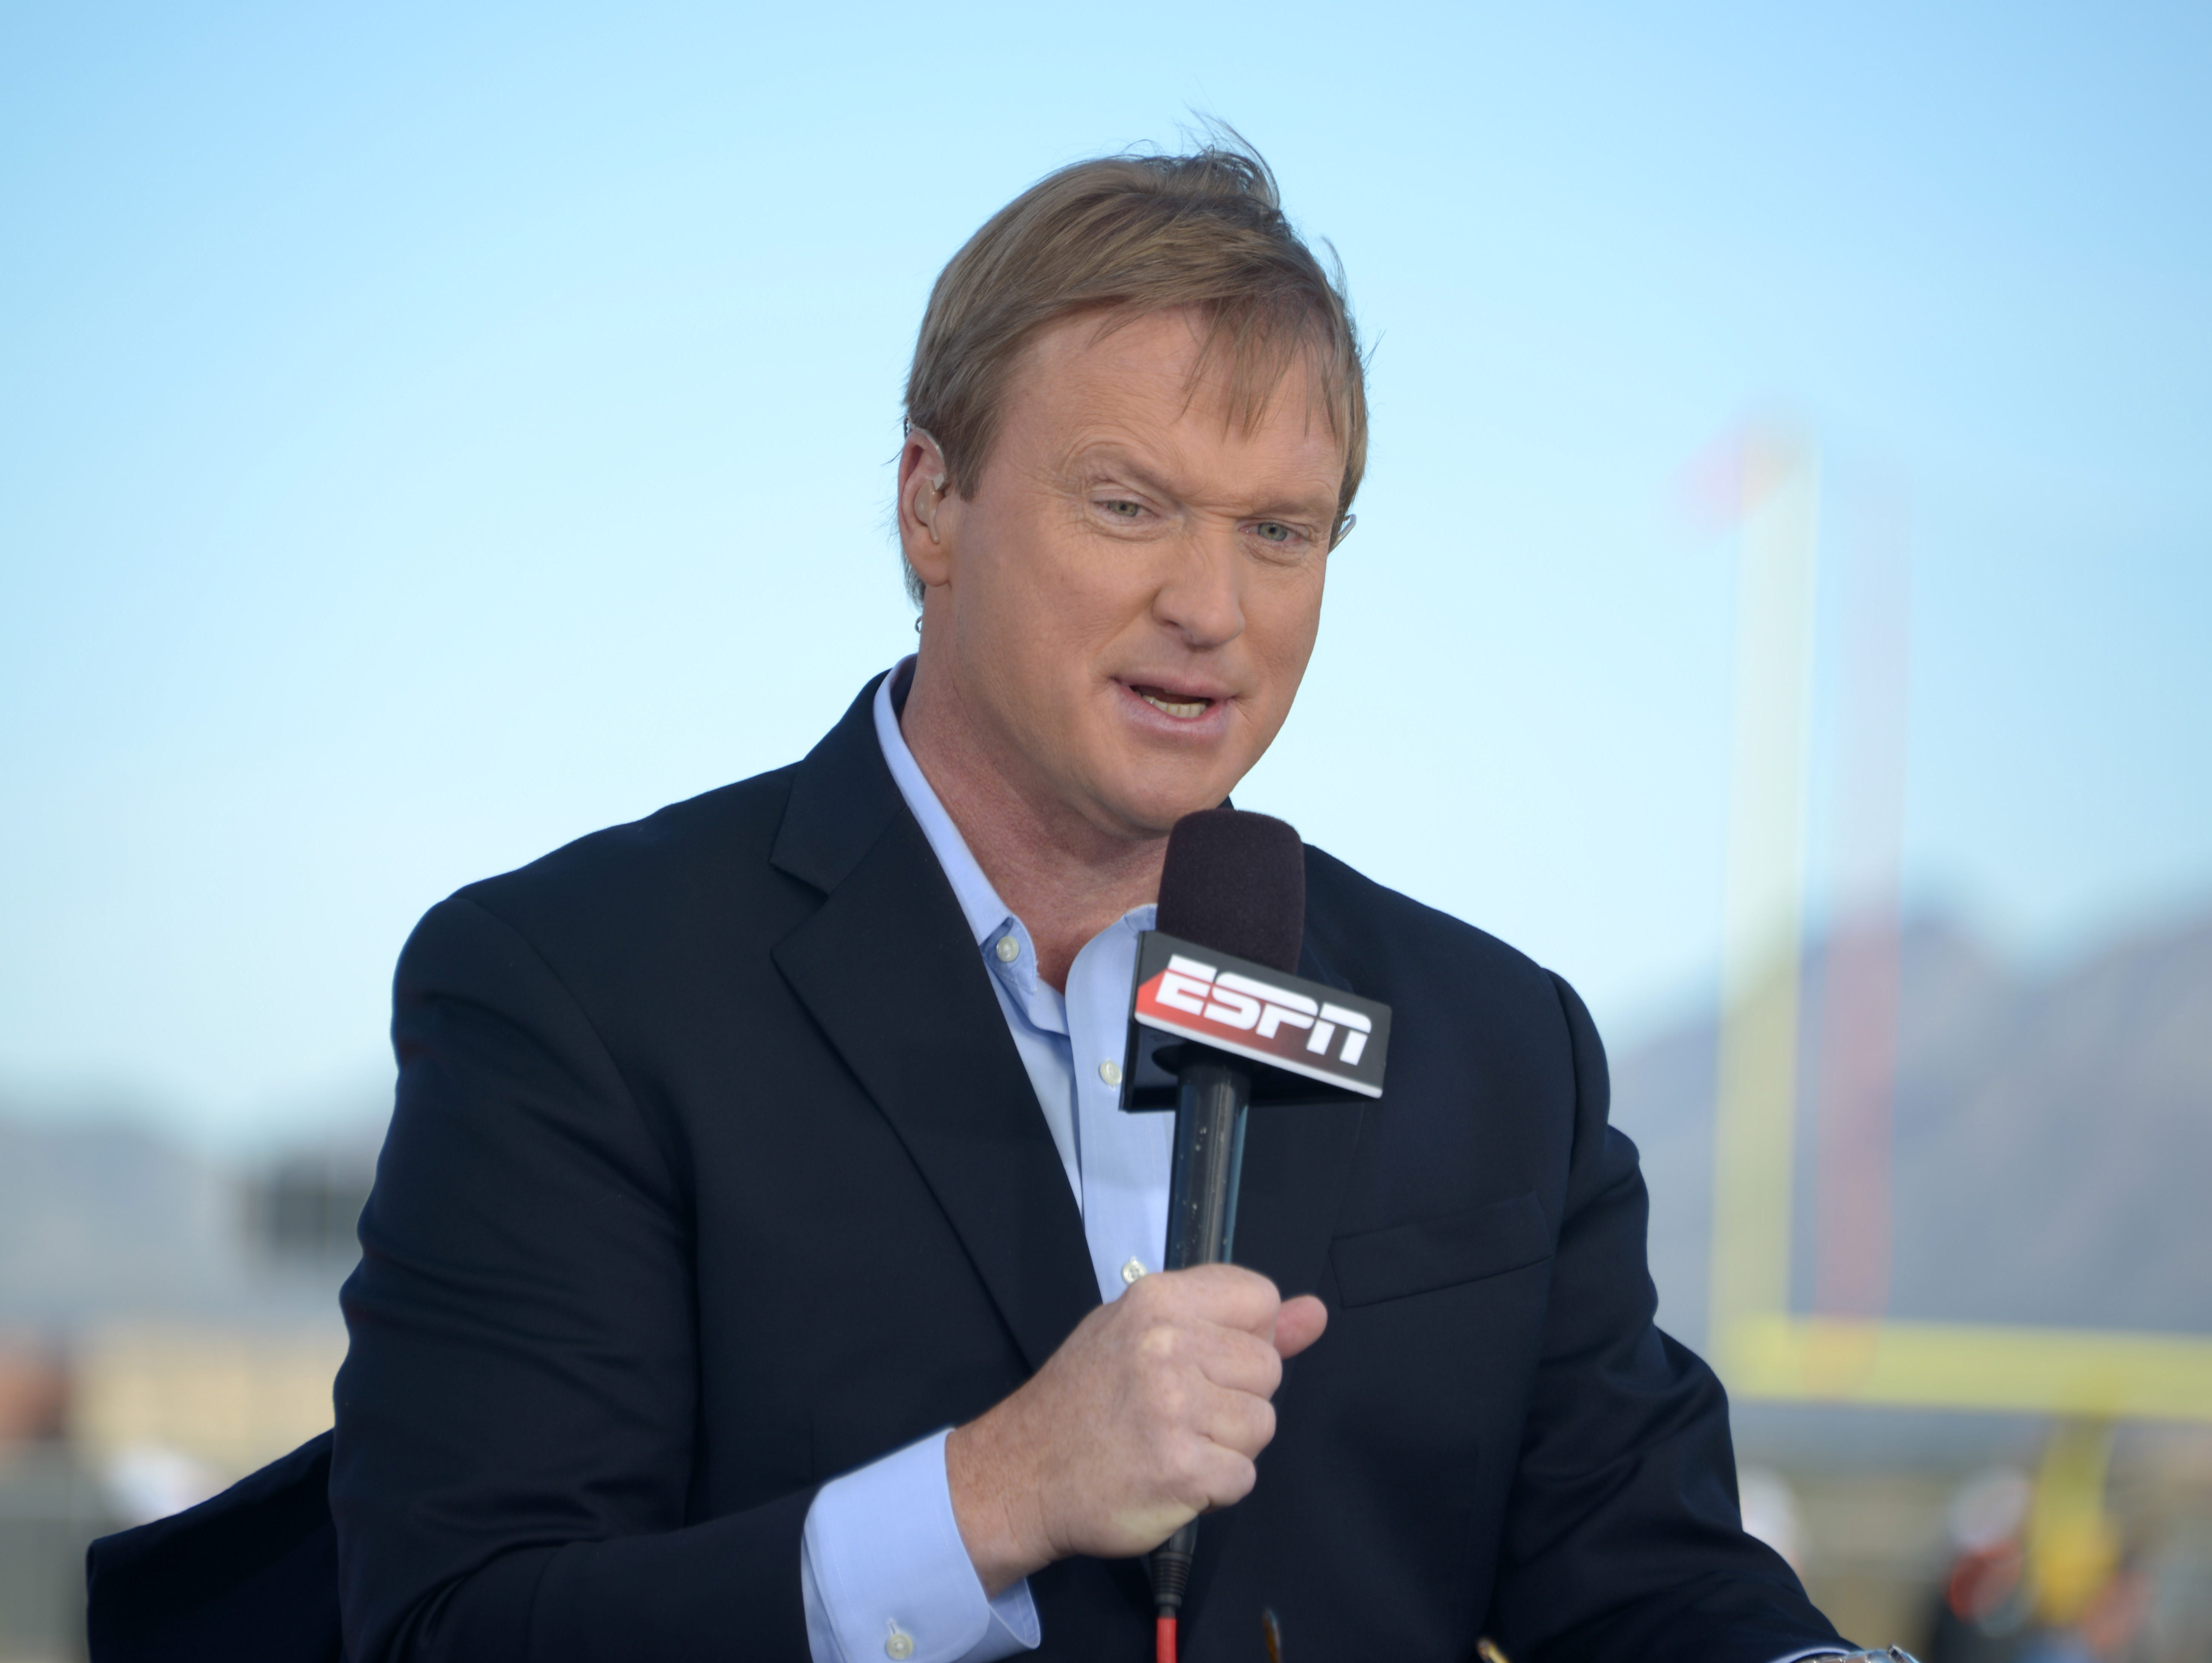 ESPN broadcaster and former Tampa Bay Buccaneers and Oakland Raiders coach Jon Gruden.